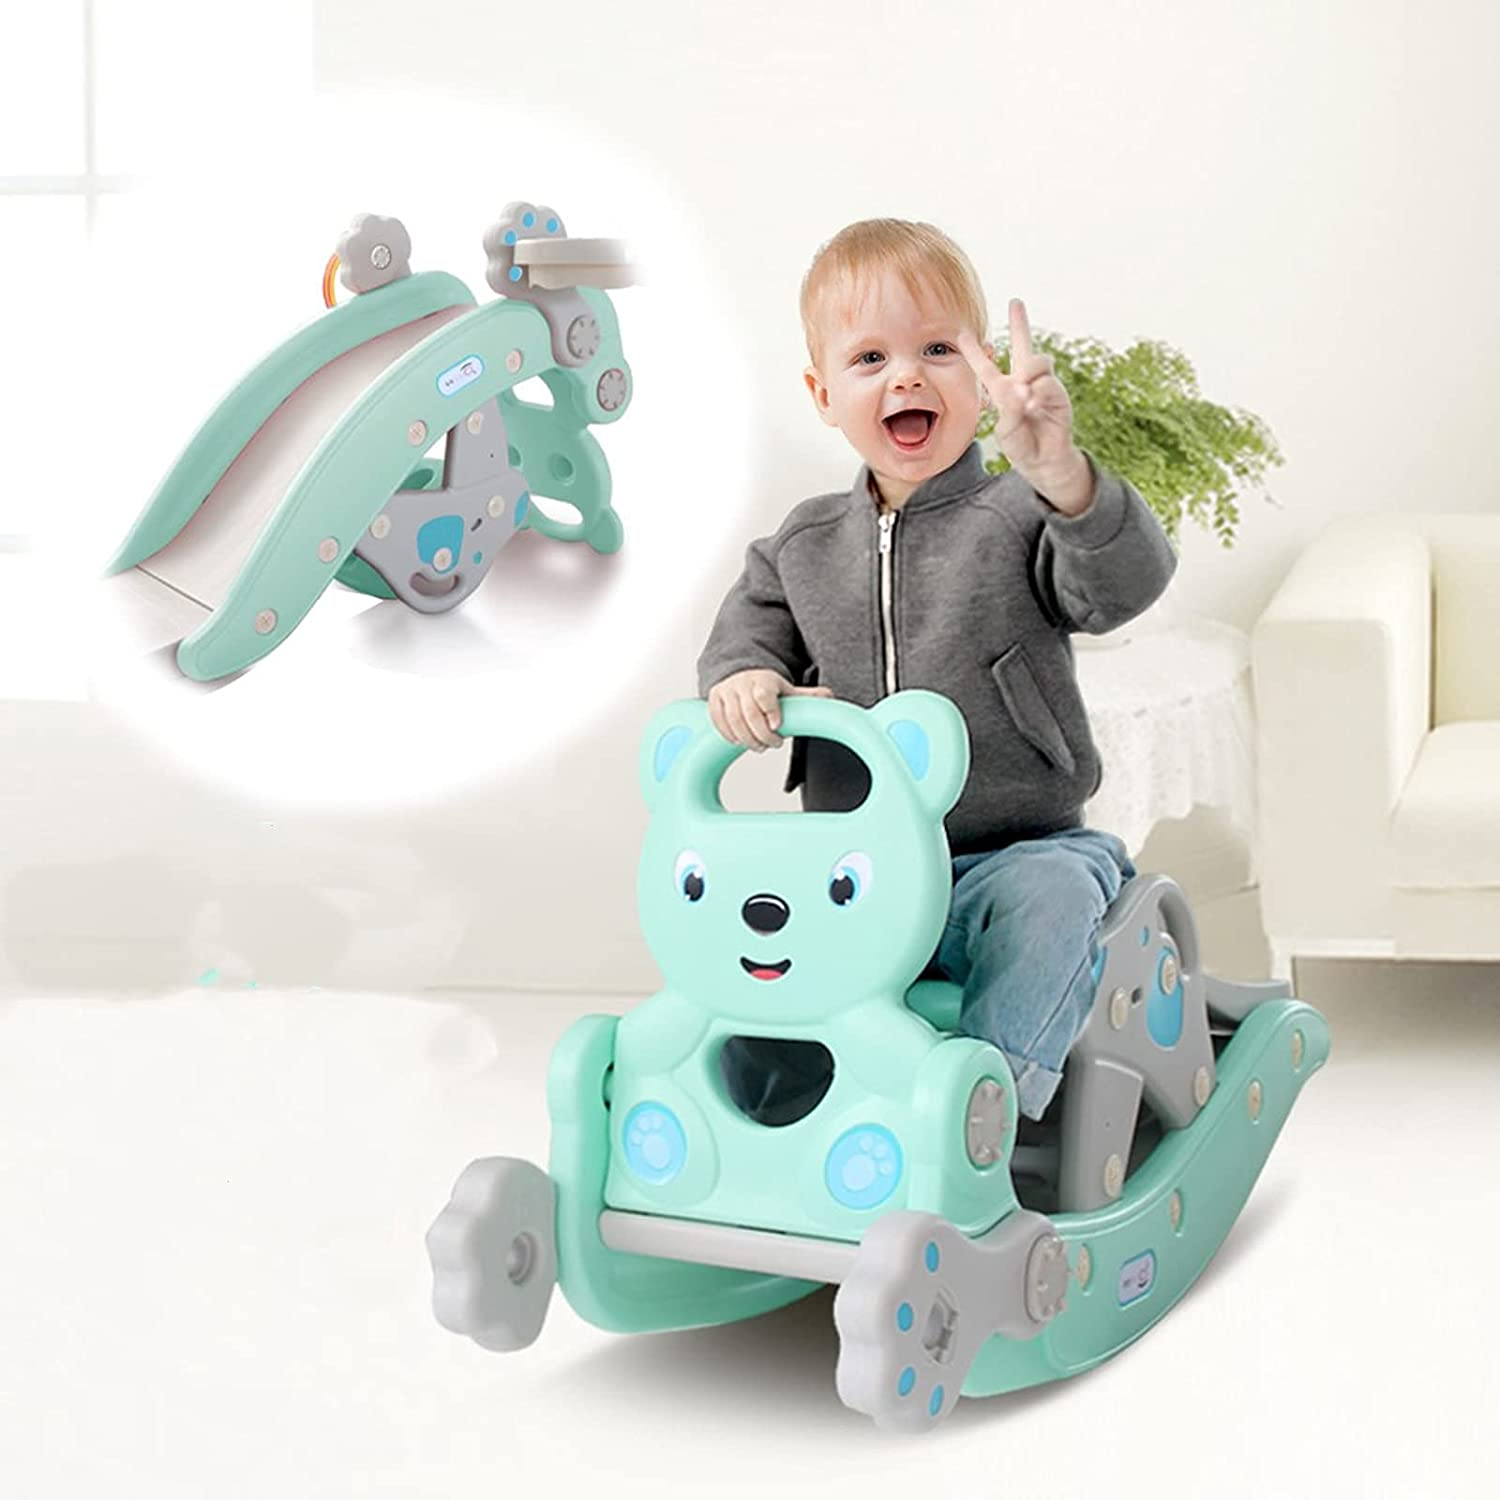 HUZONG Kids Slipping Slide and Rocking Horse Suit: Sit-to-Stand